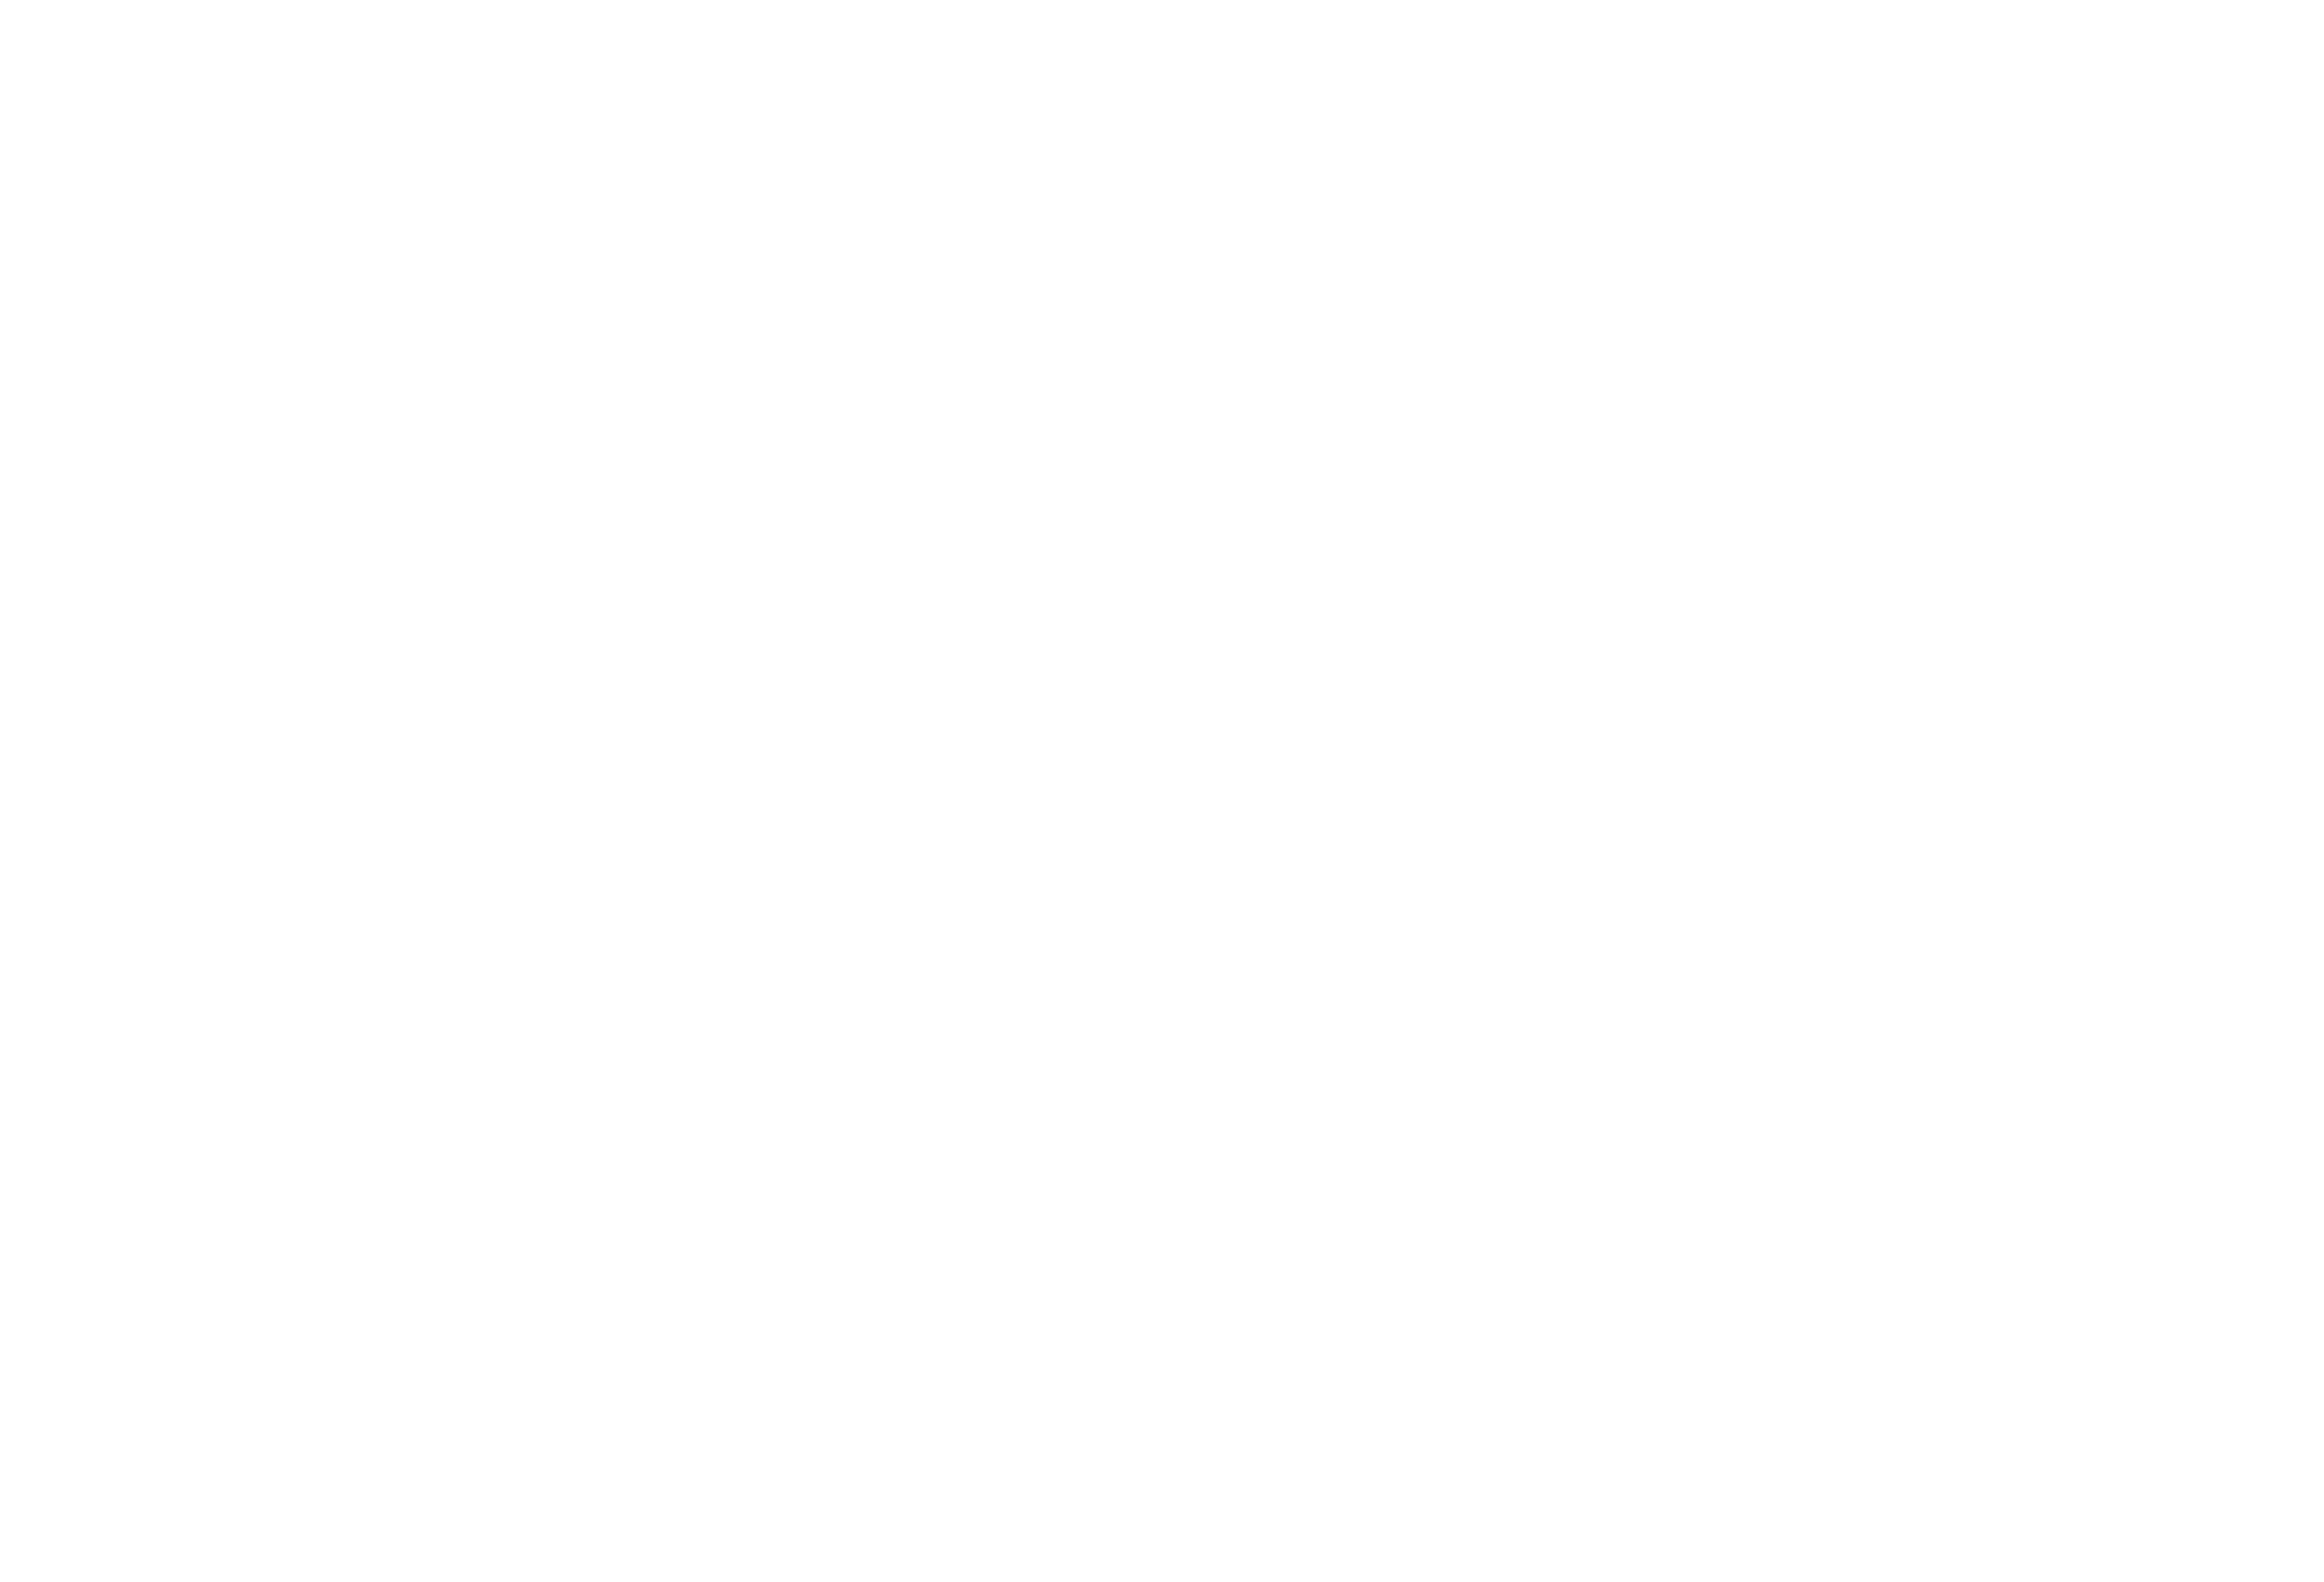 IAMAG Master Classes